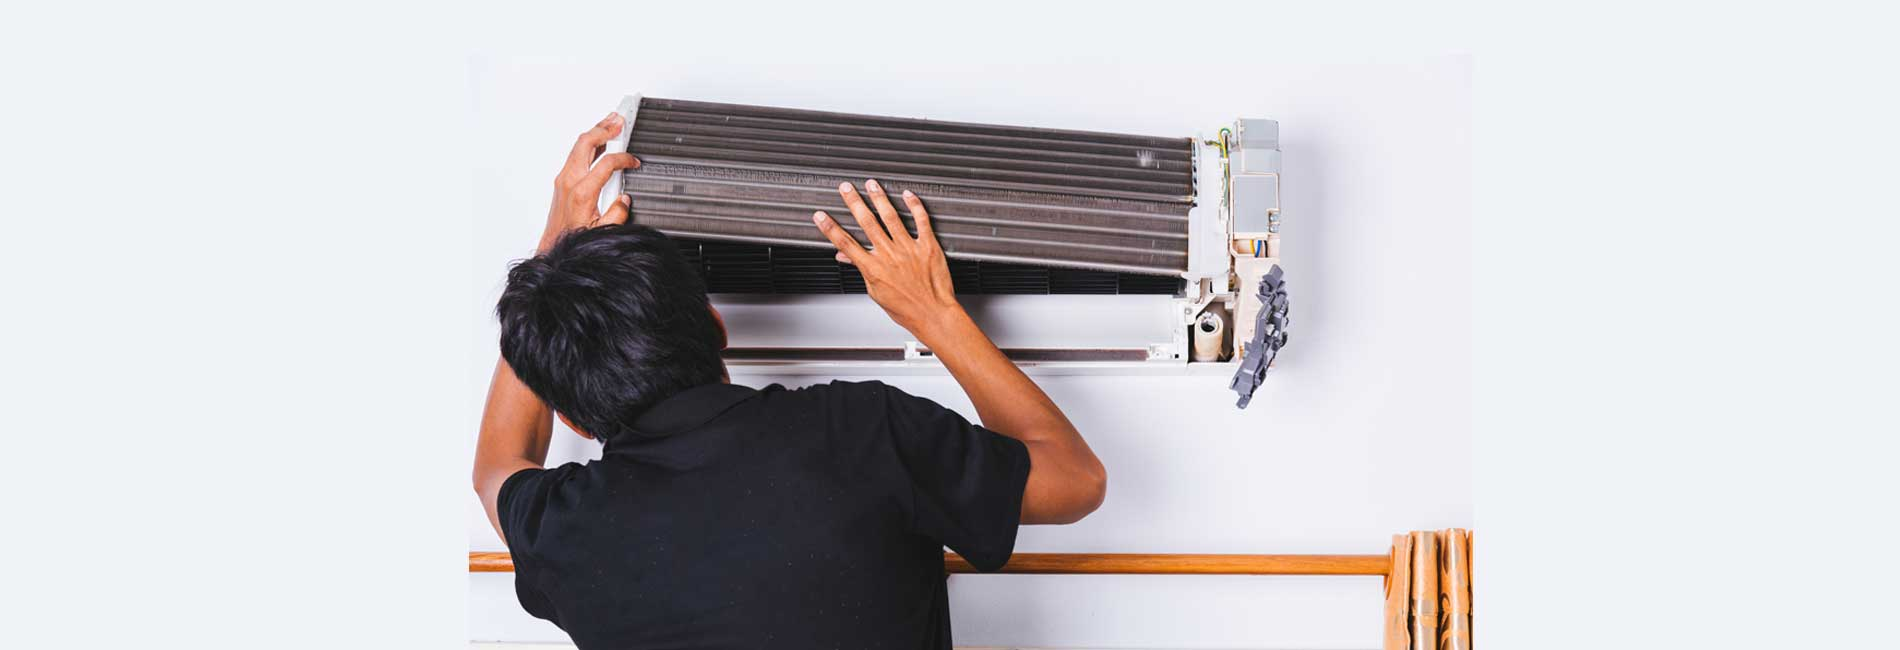 Air Conditioner Repair in Chinmaya Nagar